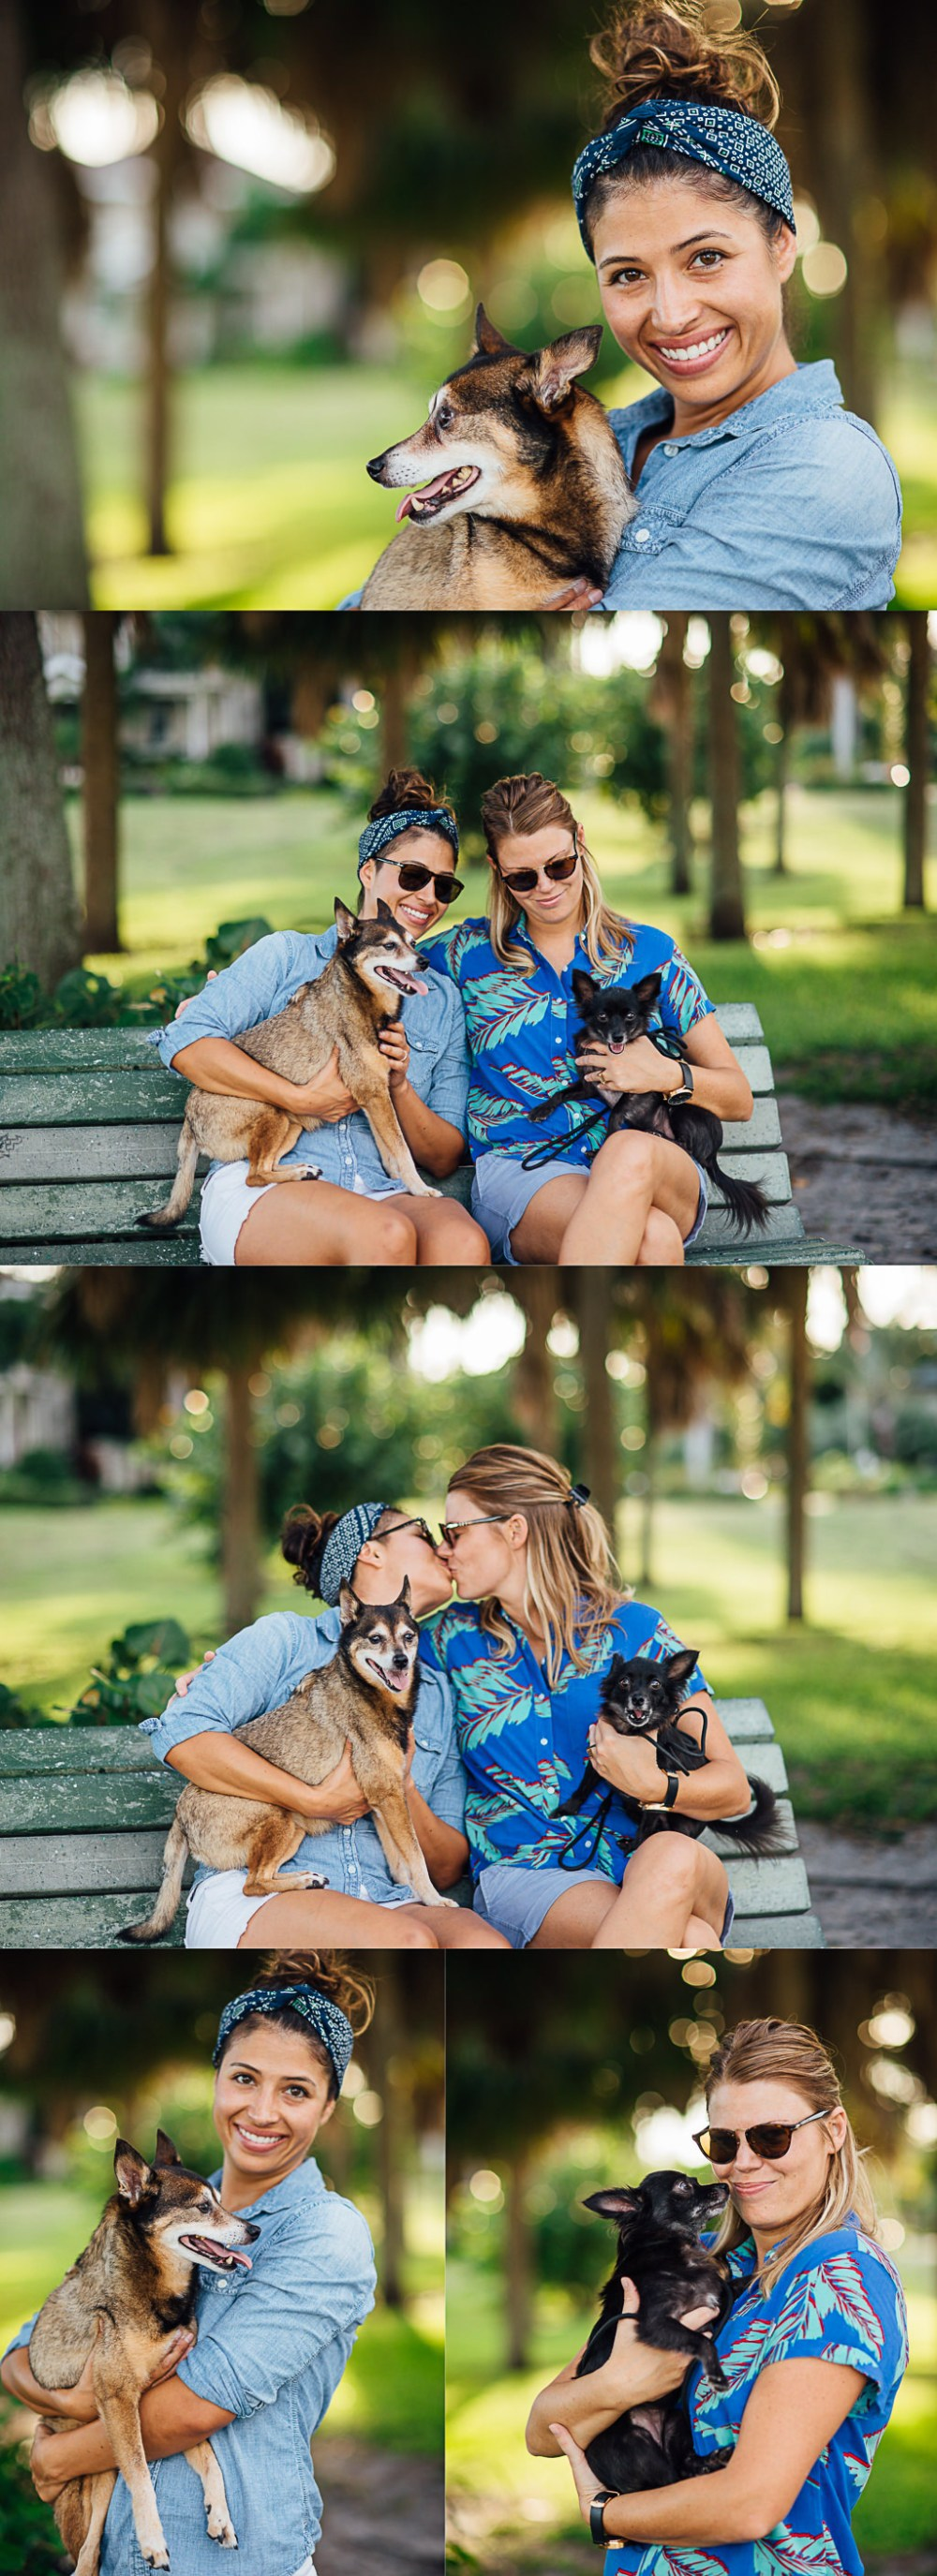 LGBT Couples Portraits with Pets in Saint Petersburg Florida at Lassi